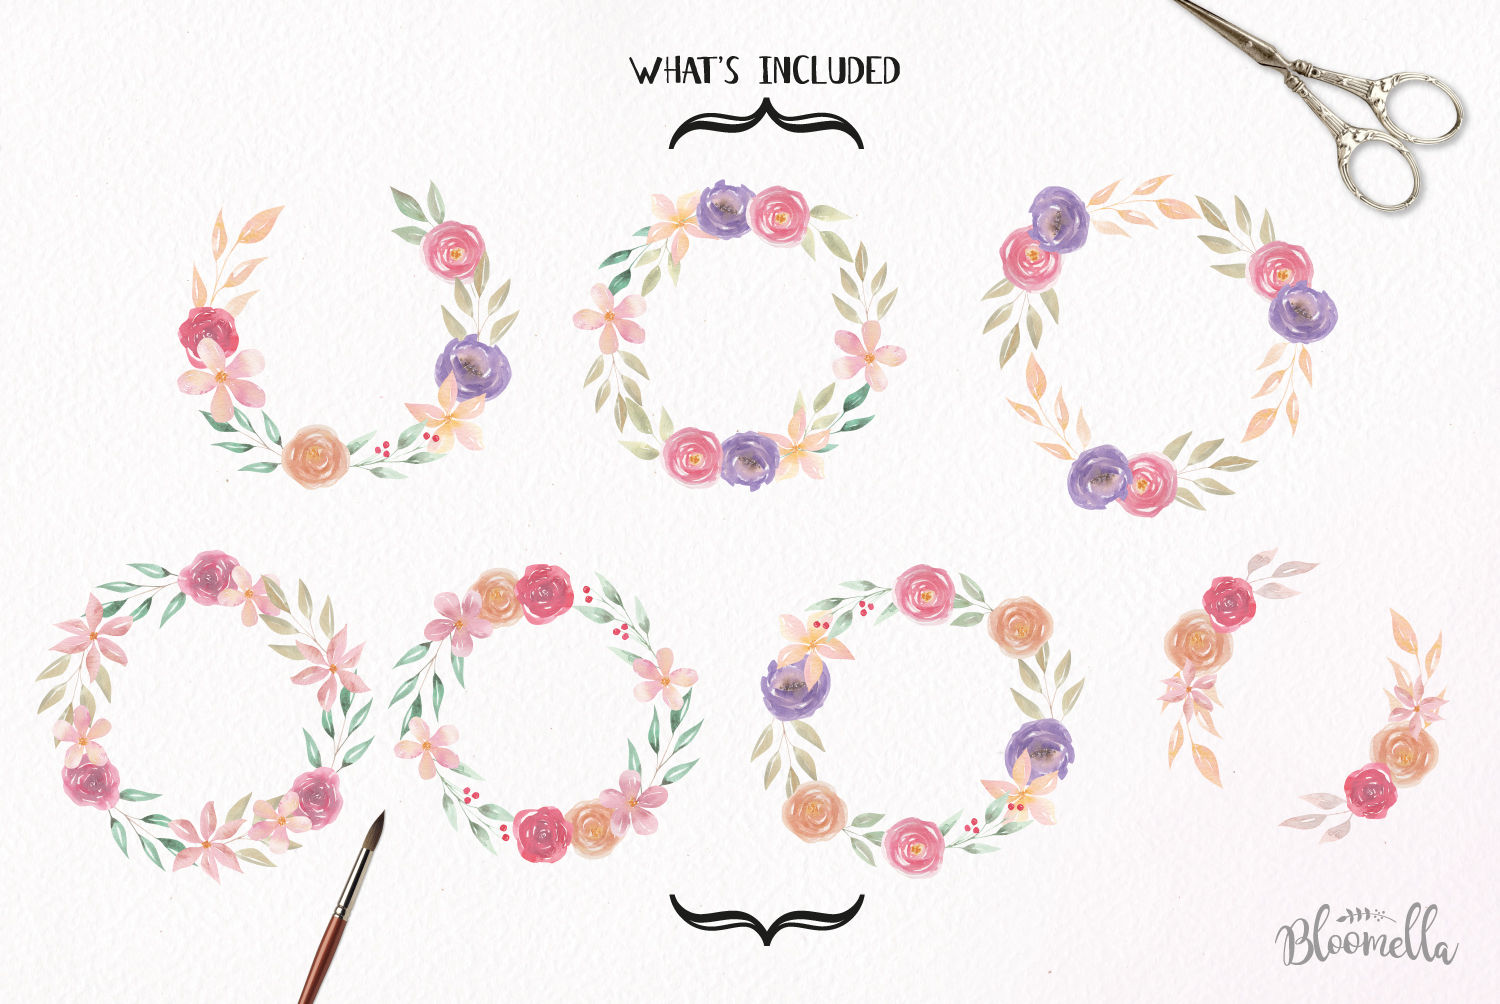 Floral 7 Wreath Watercolor Floral Softly Garlands Flowers example image 4